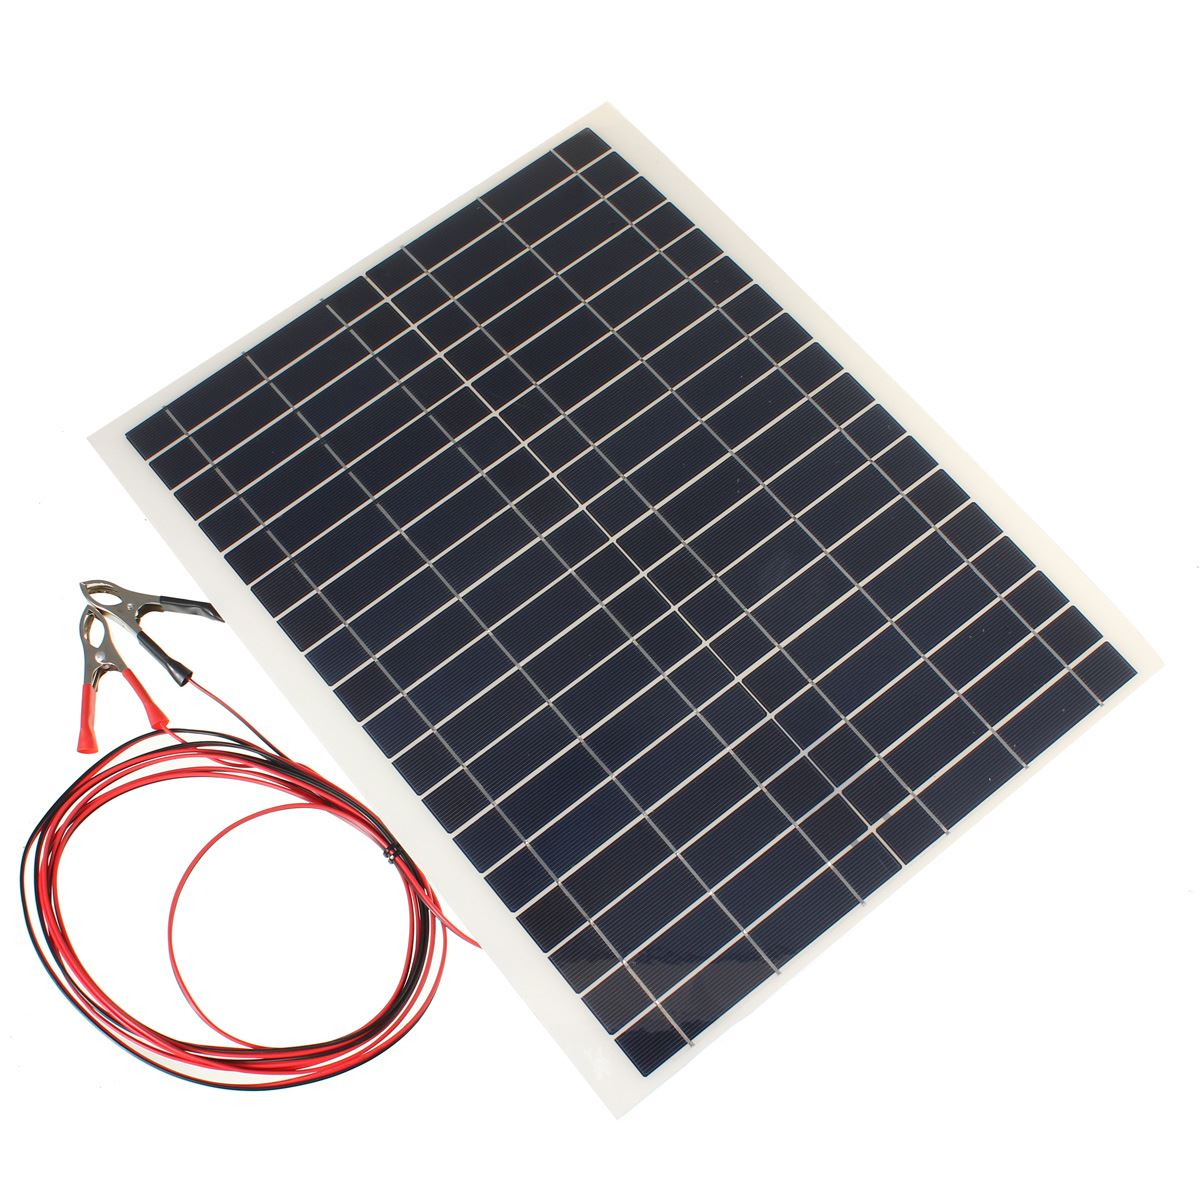 Hot Sale 20W 12V PolyCrystalline Epoxy Cells Solar Panel DIY Solar Module Battery Power Charger+2x Alligator Clips+4m Cable